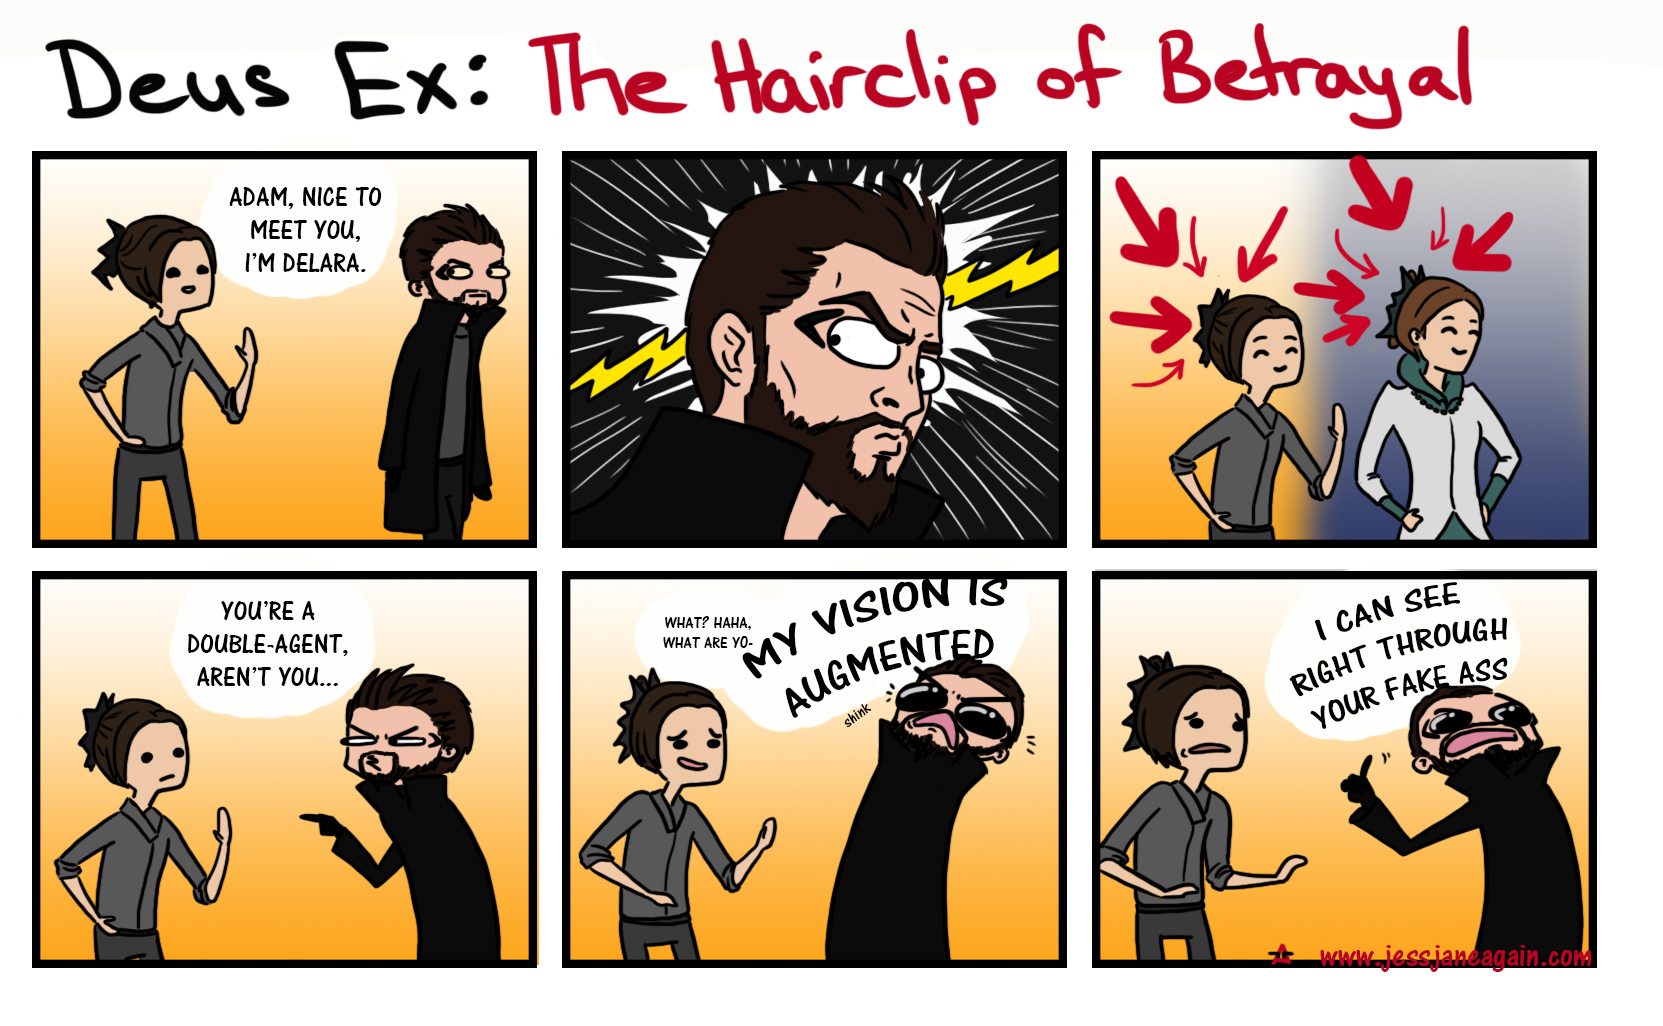 deus ex: hairclip of betrayal